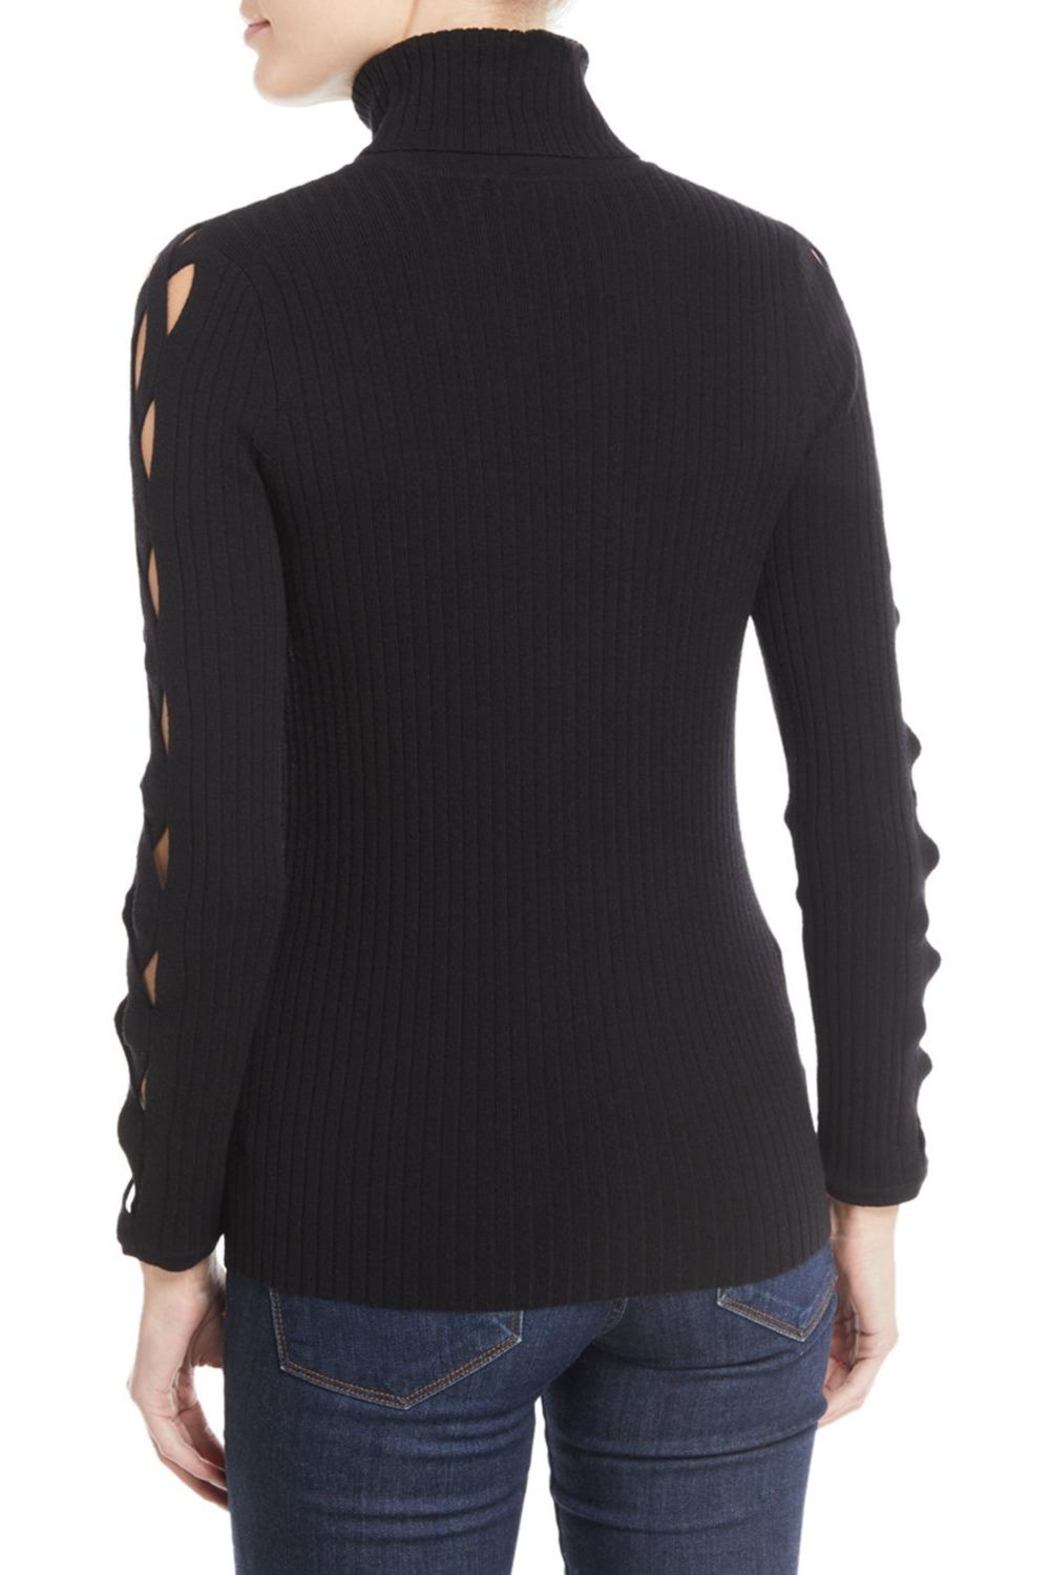 Ramy Brook Kimila Sweater - Side Cropped Image